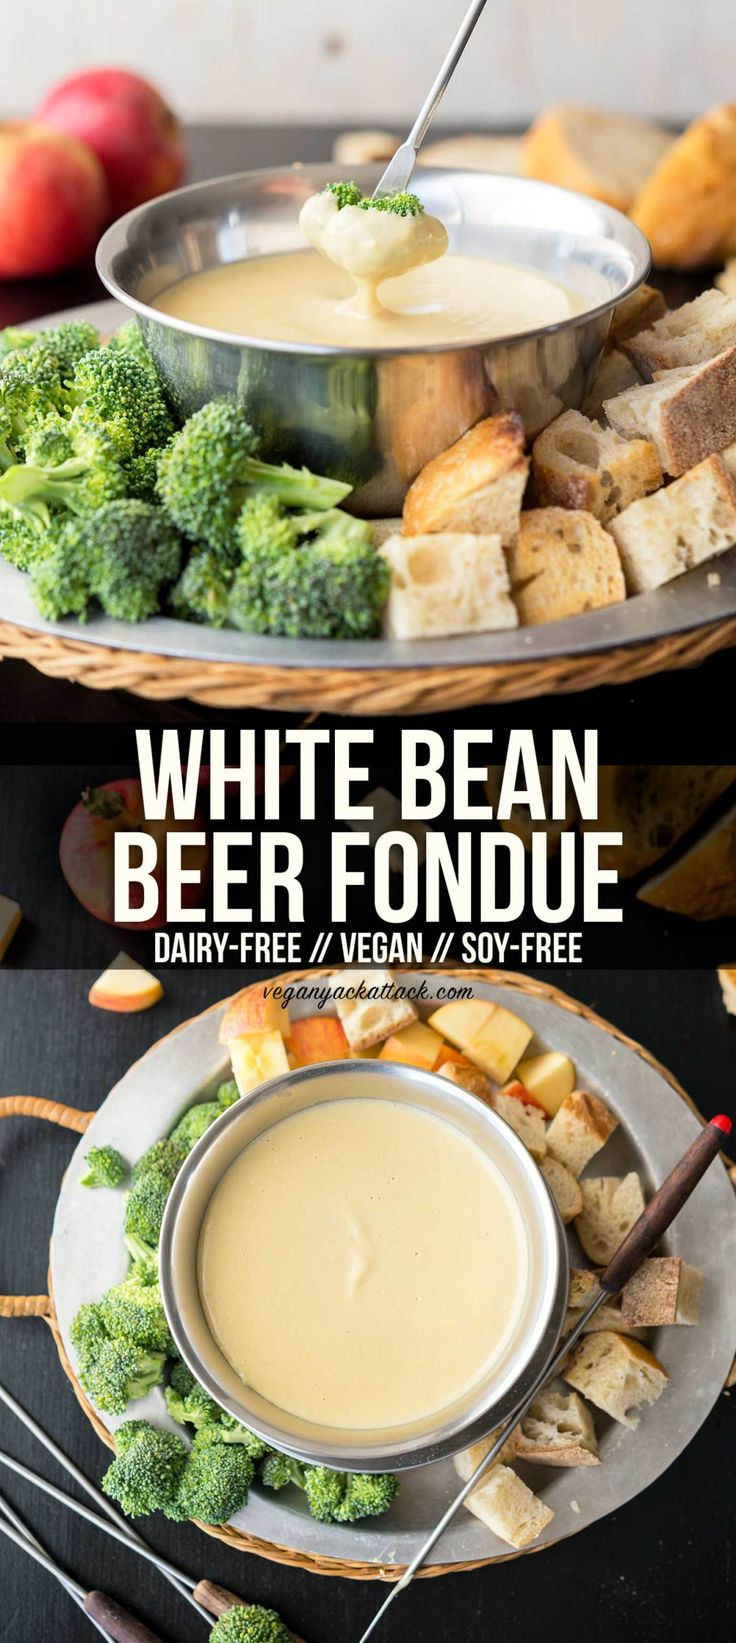 Substitute miso/chickpea miso (adjust liquid to compensate) or non-alcoholic beer